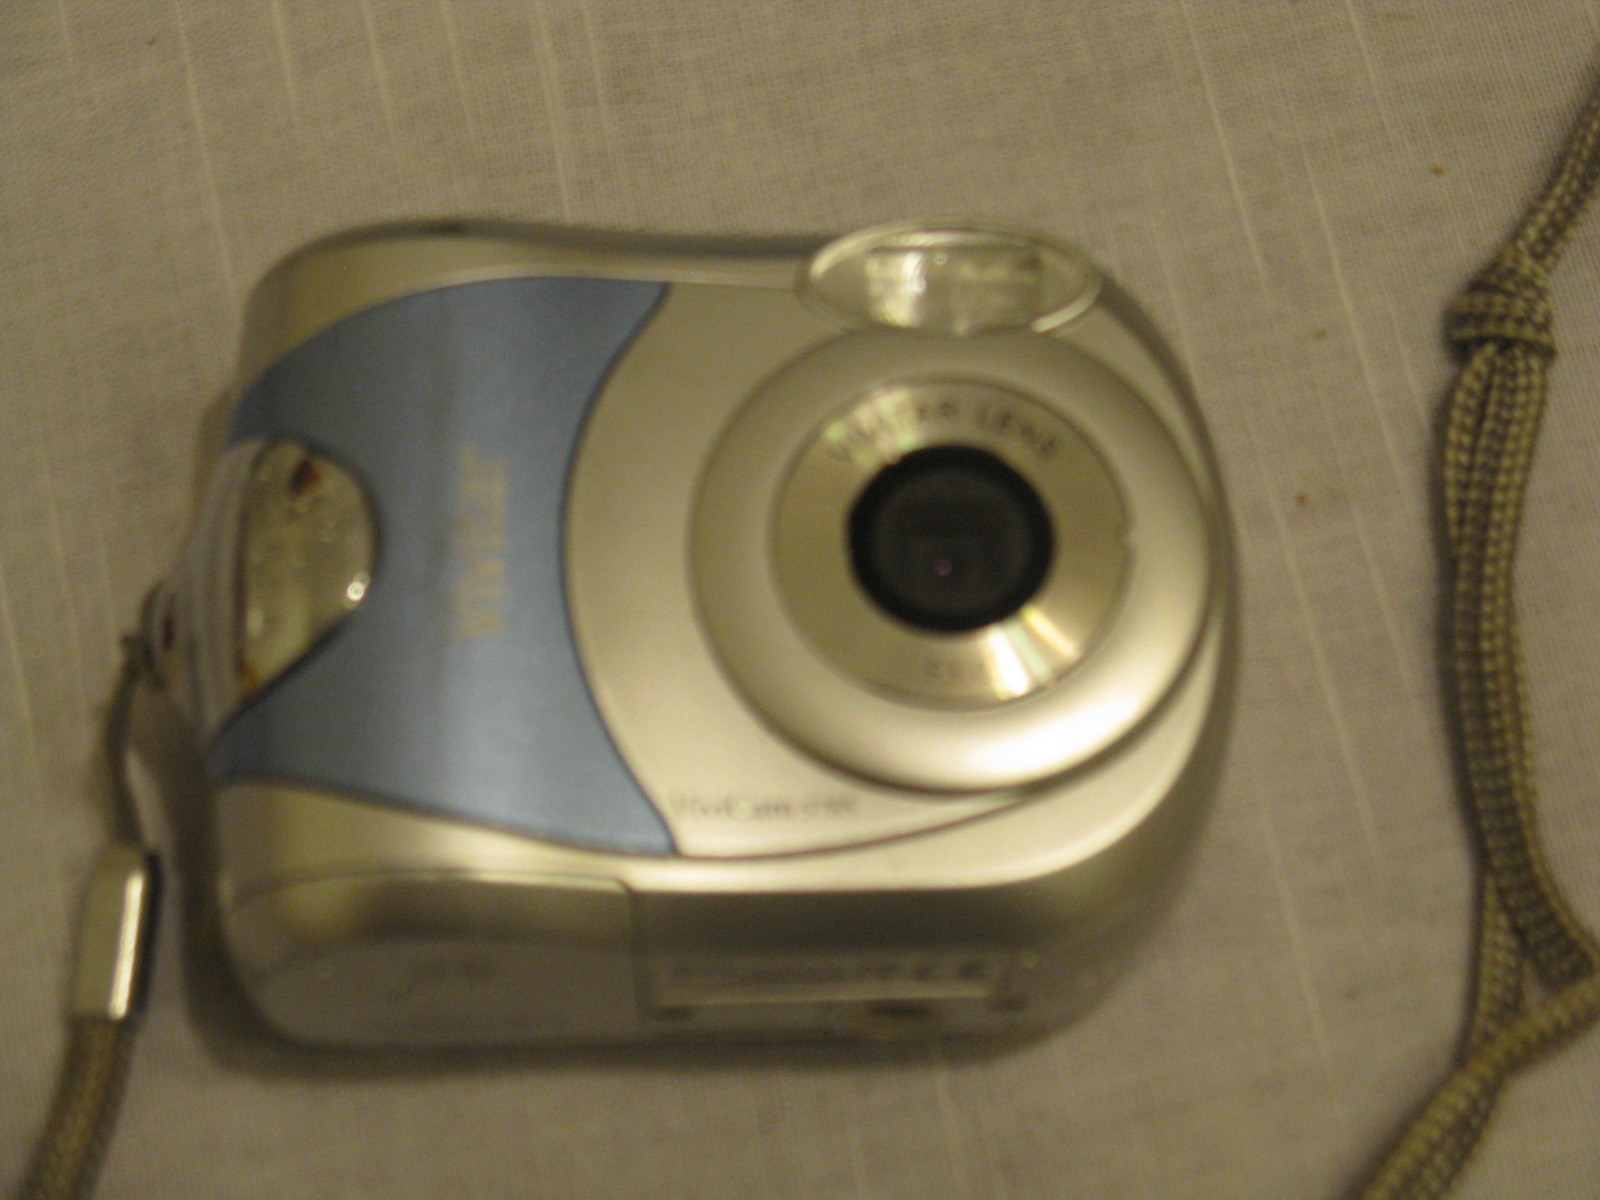 Primary image for Vivitar Vivicam 3785 3.0MP Digital Camera